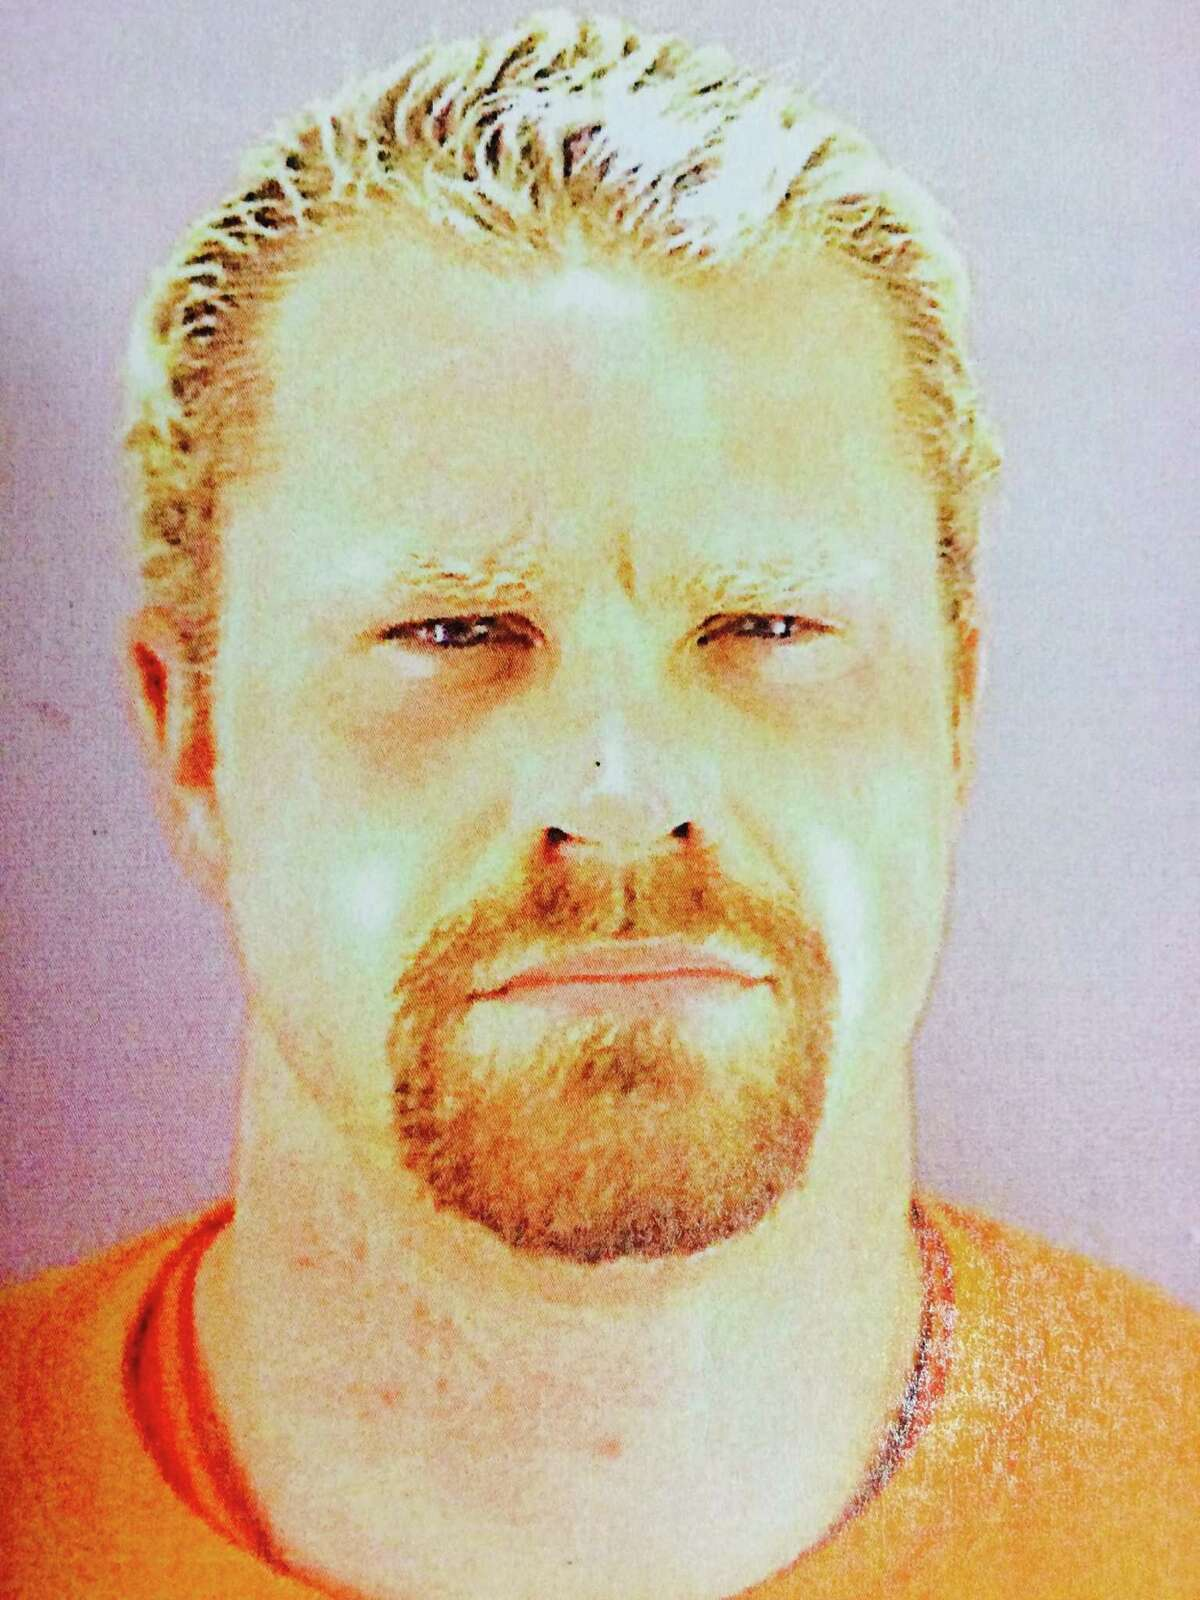 Police arrested Jackson Van Deusen, 39, of San Francisco, on Friday in the stabbing death of a man in the Outer Sunset.